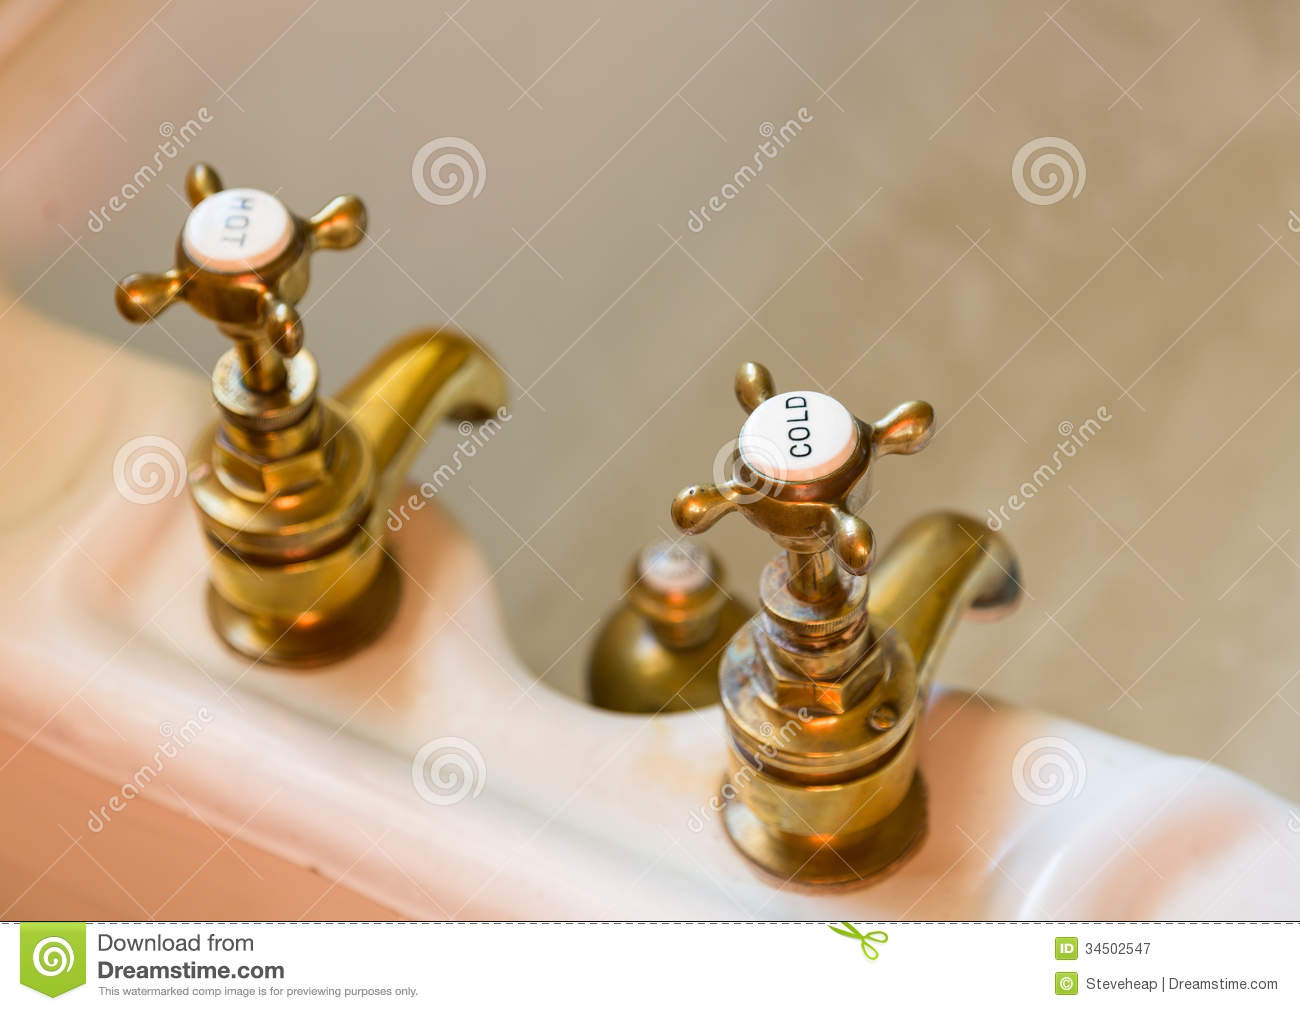 Marvelous Antique Bath Taps Or Faucets